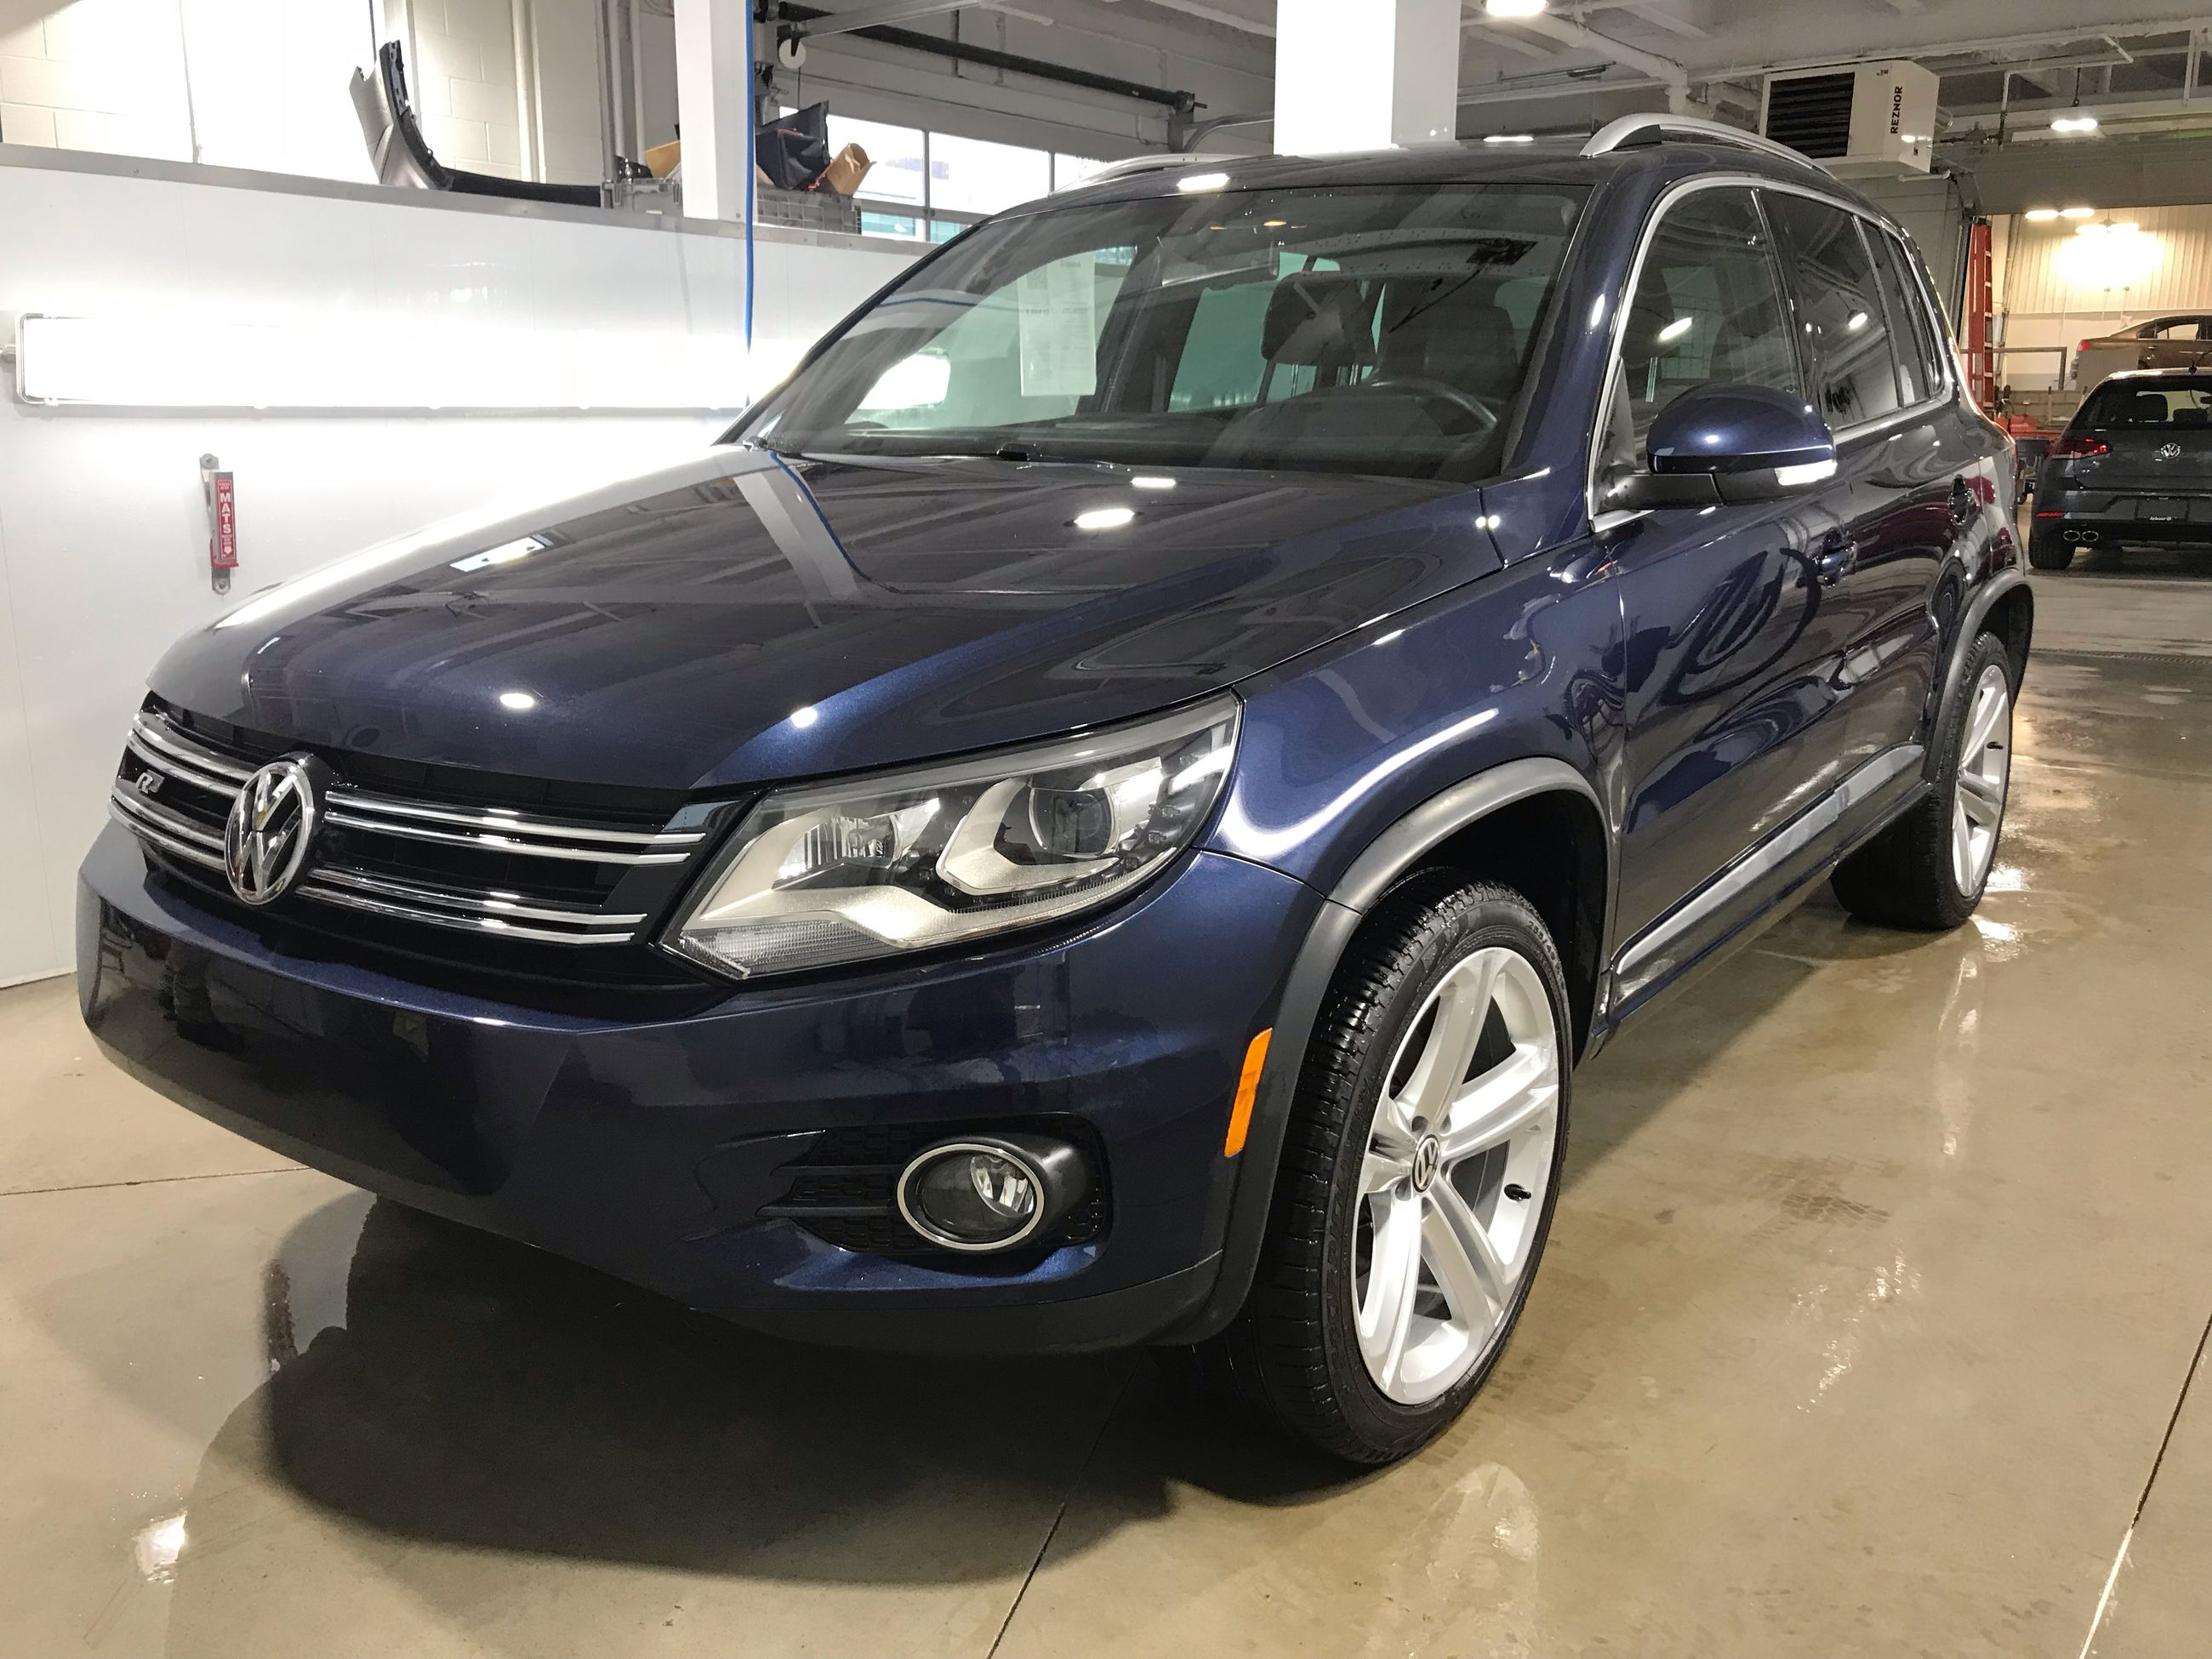 Sale Volkswagen R Awd For Line Automatique Used 2015 Tiguan Highline CxBoerdW